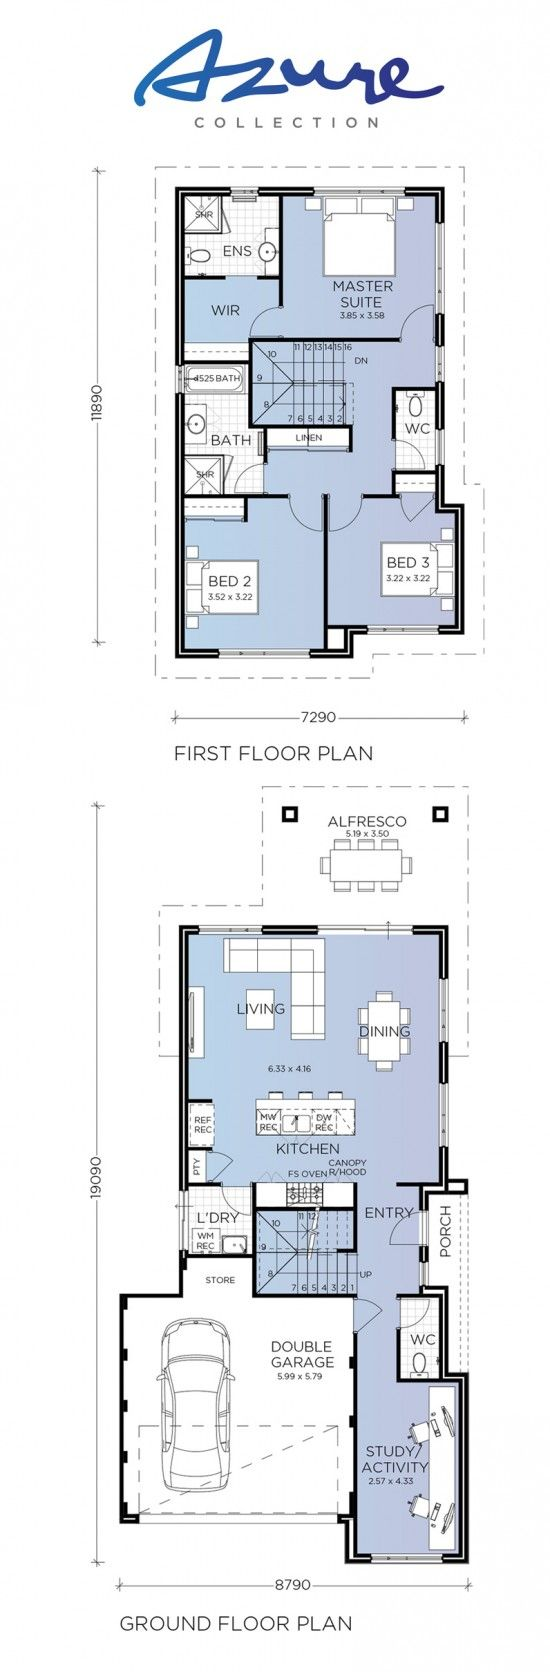 Valencia Azure Collection Switch Homes Narrow Lot House Plans House Floor Plans House Plans